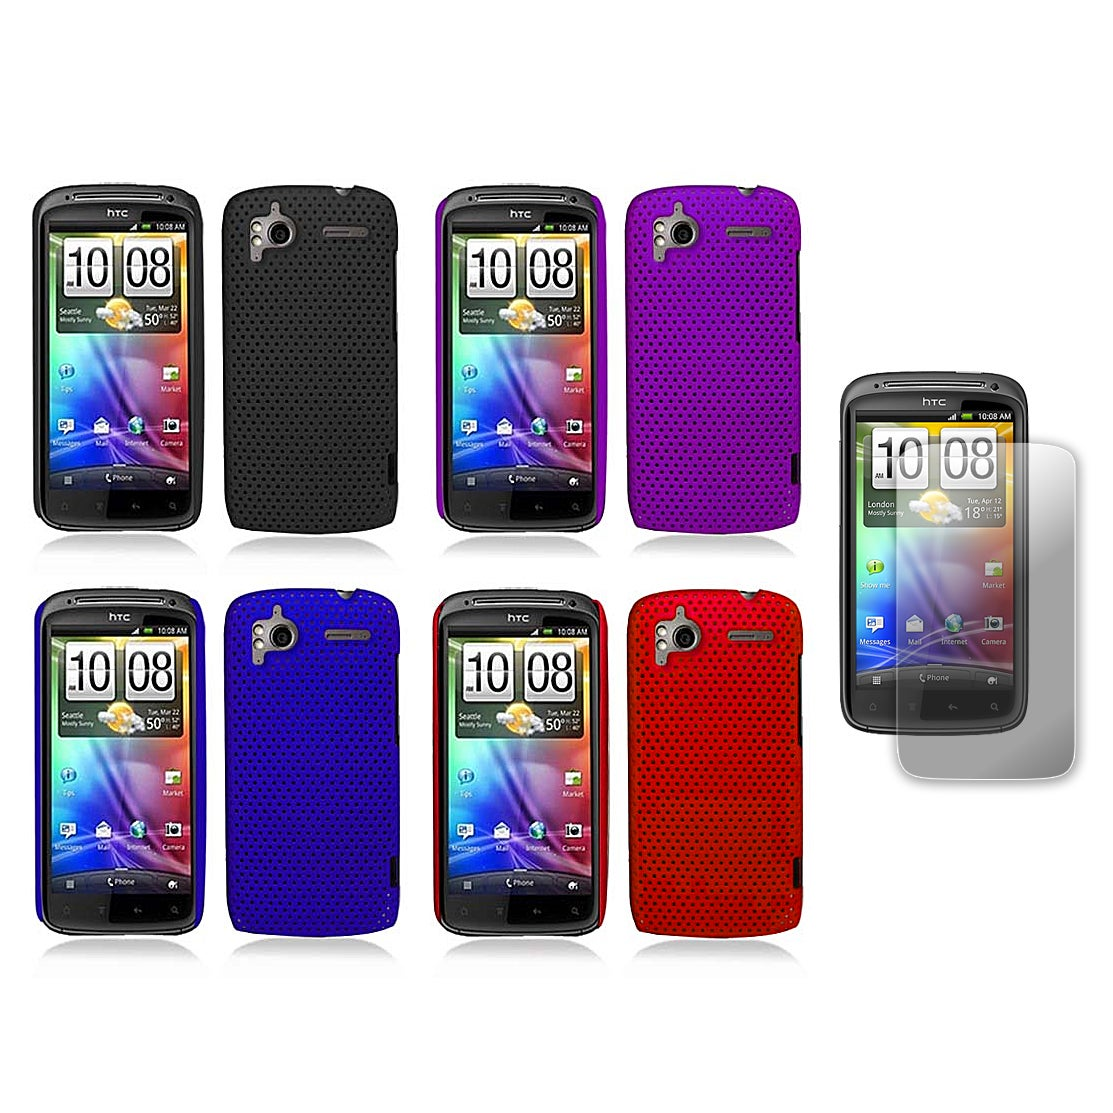 HTC Sensation 4G Rubberized Perforated Mesh Hard Case and Screen Guard